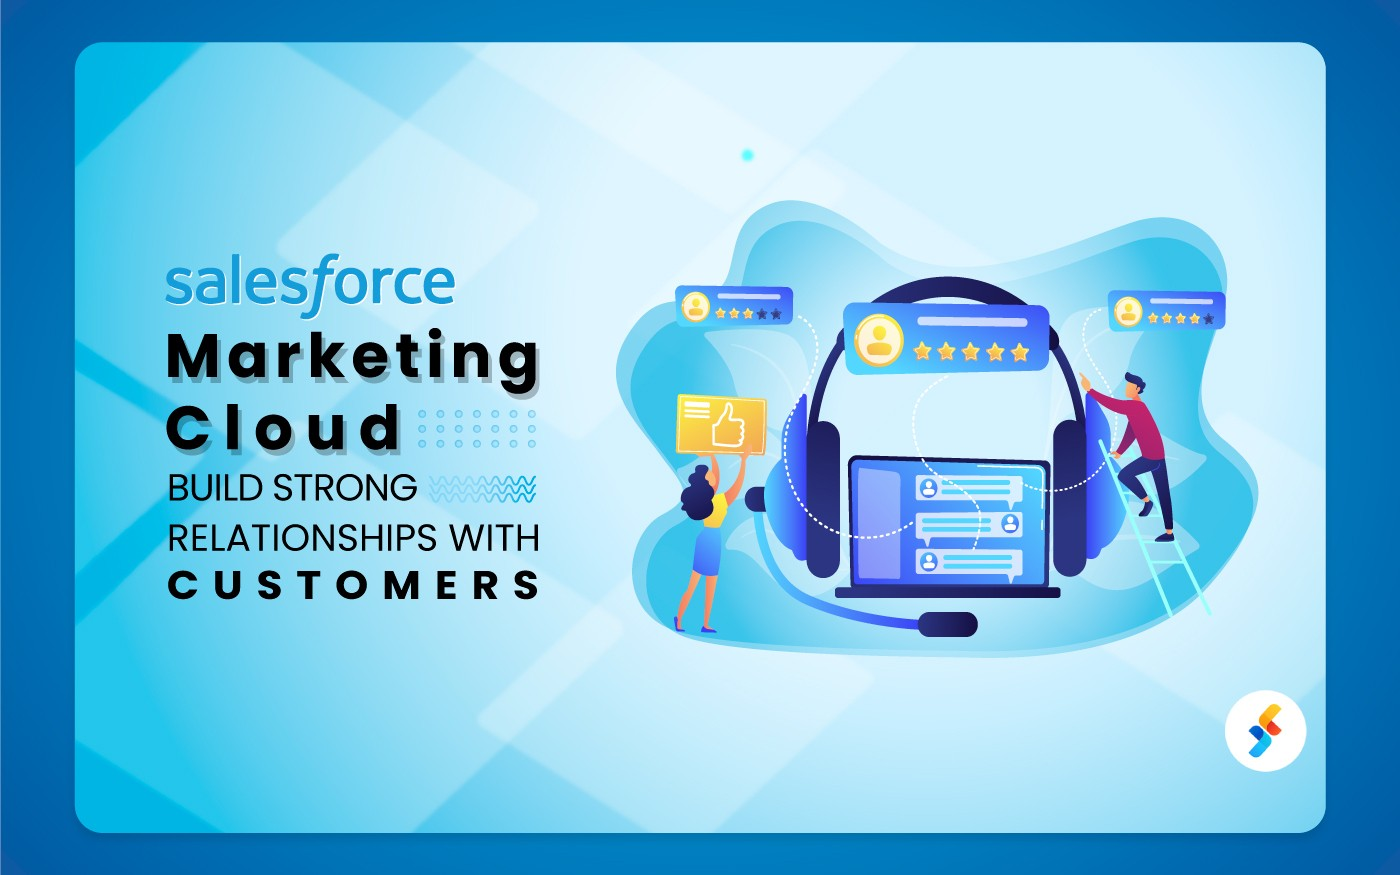 Salesforce Marketing Cloud: Build Strong Relationships with Customers (7 Ways)